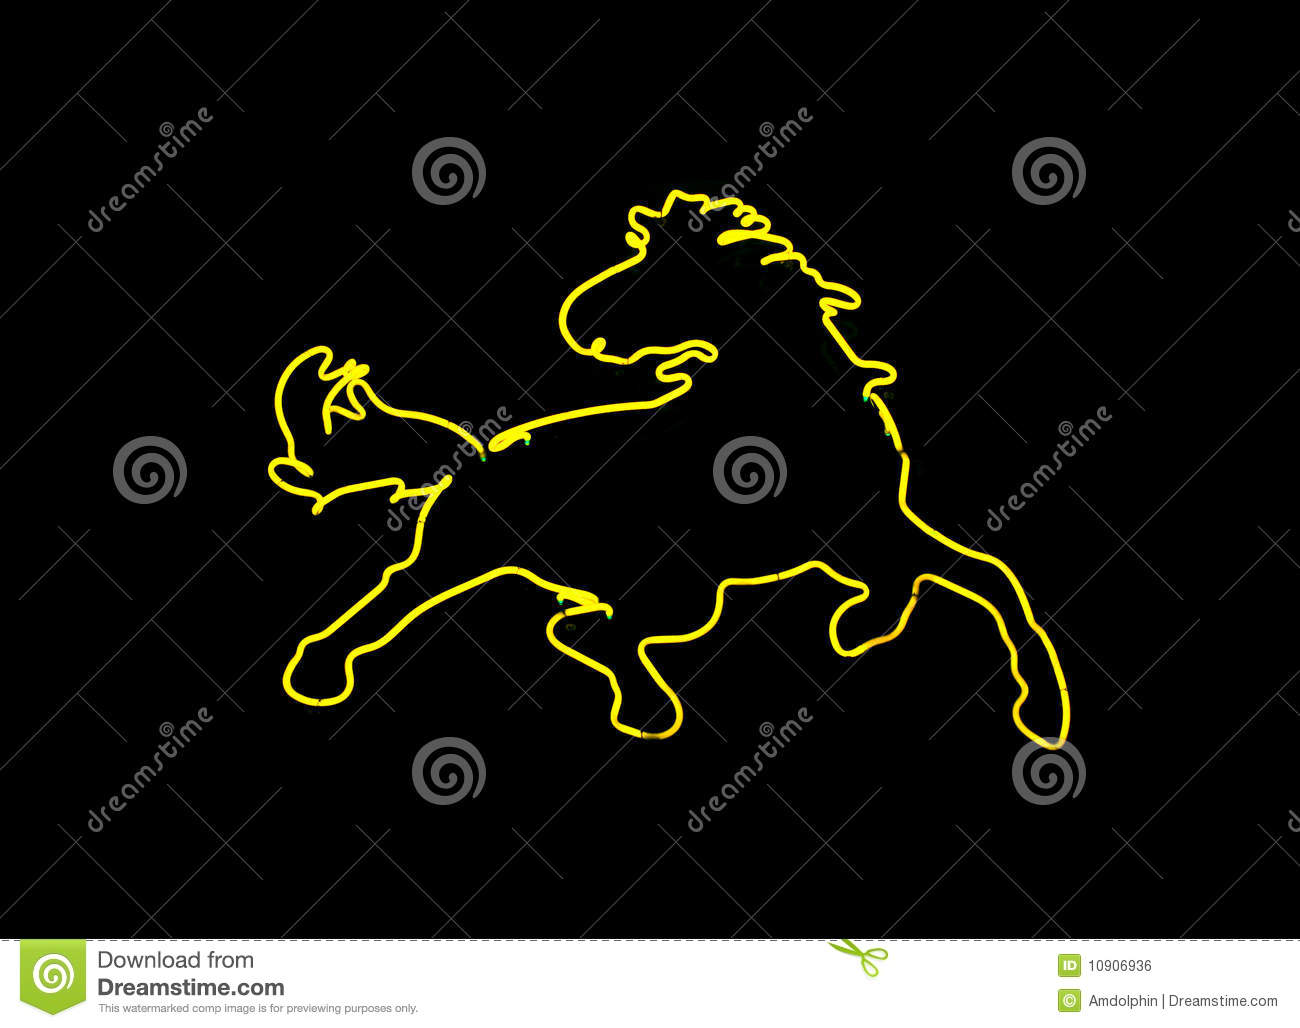 Neon Horse Shaped Sign Royalty Free Stock Image - Image ...